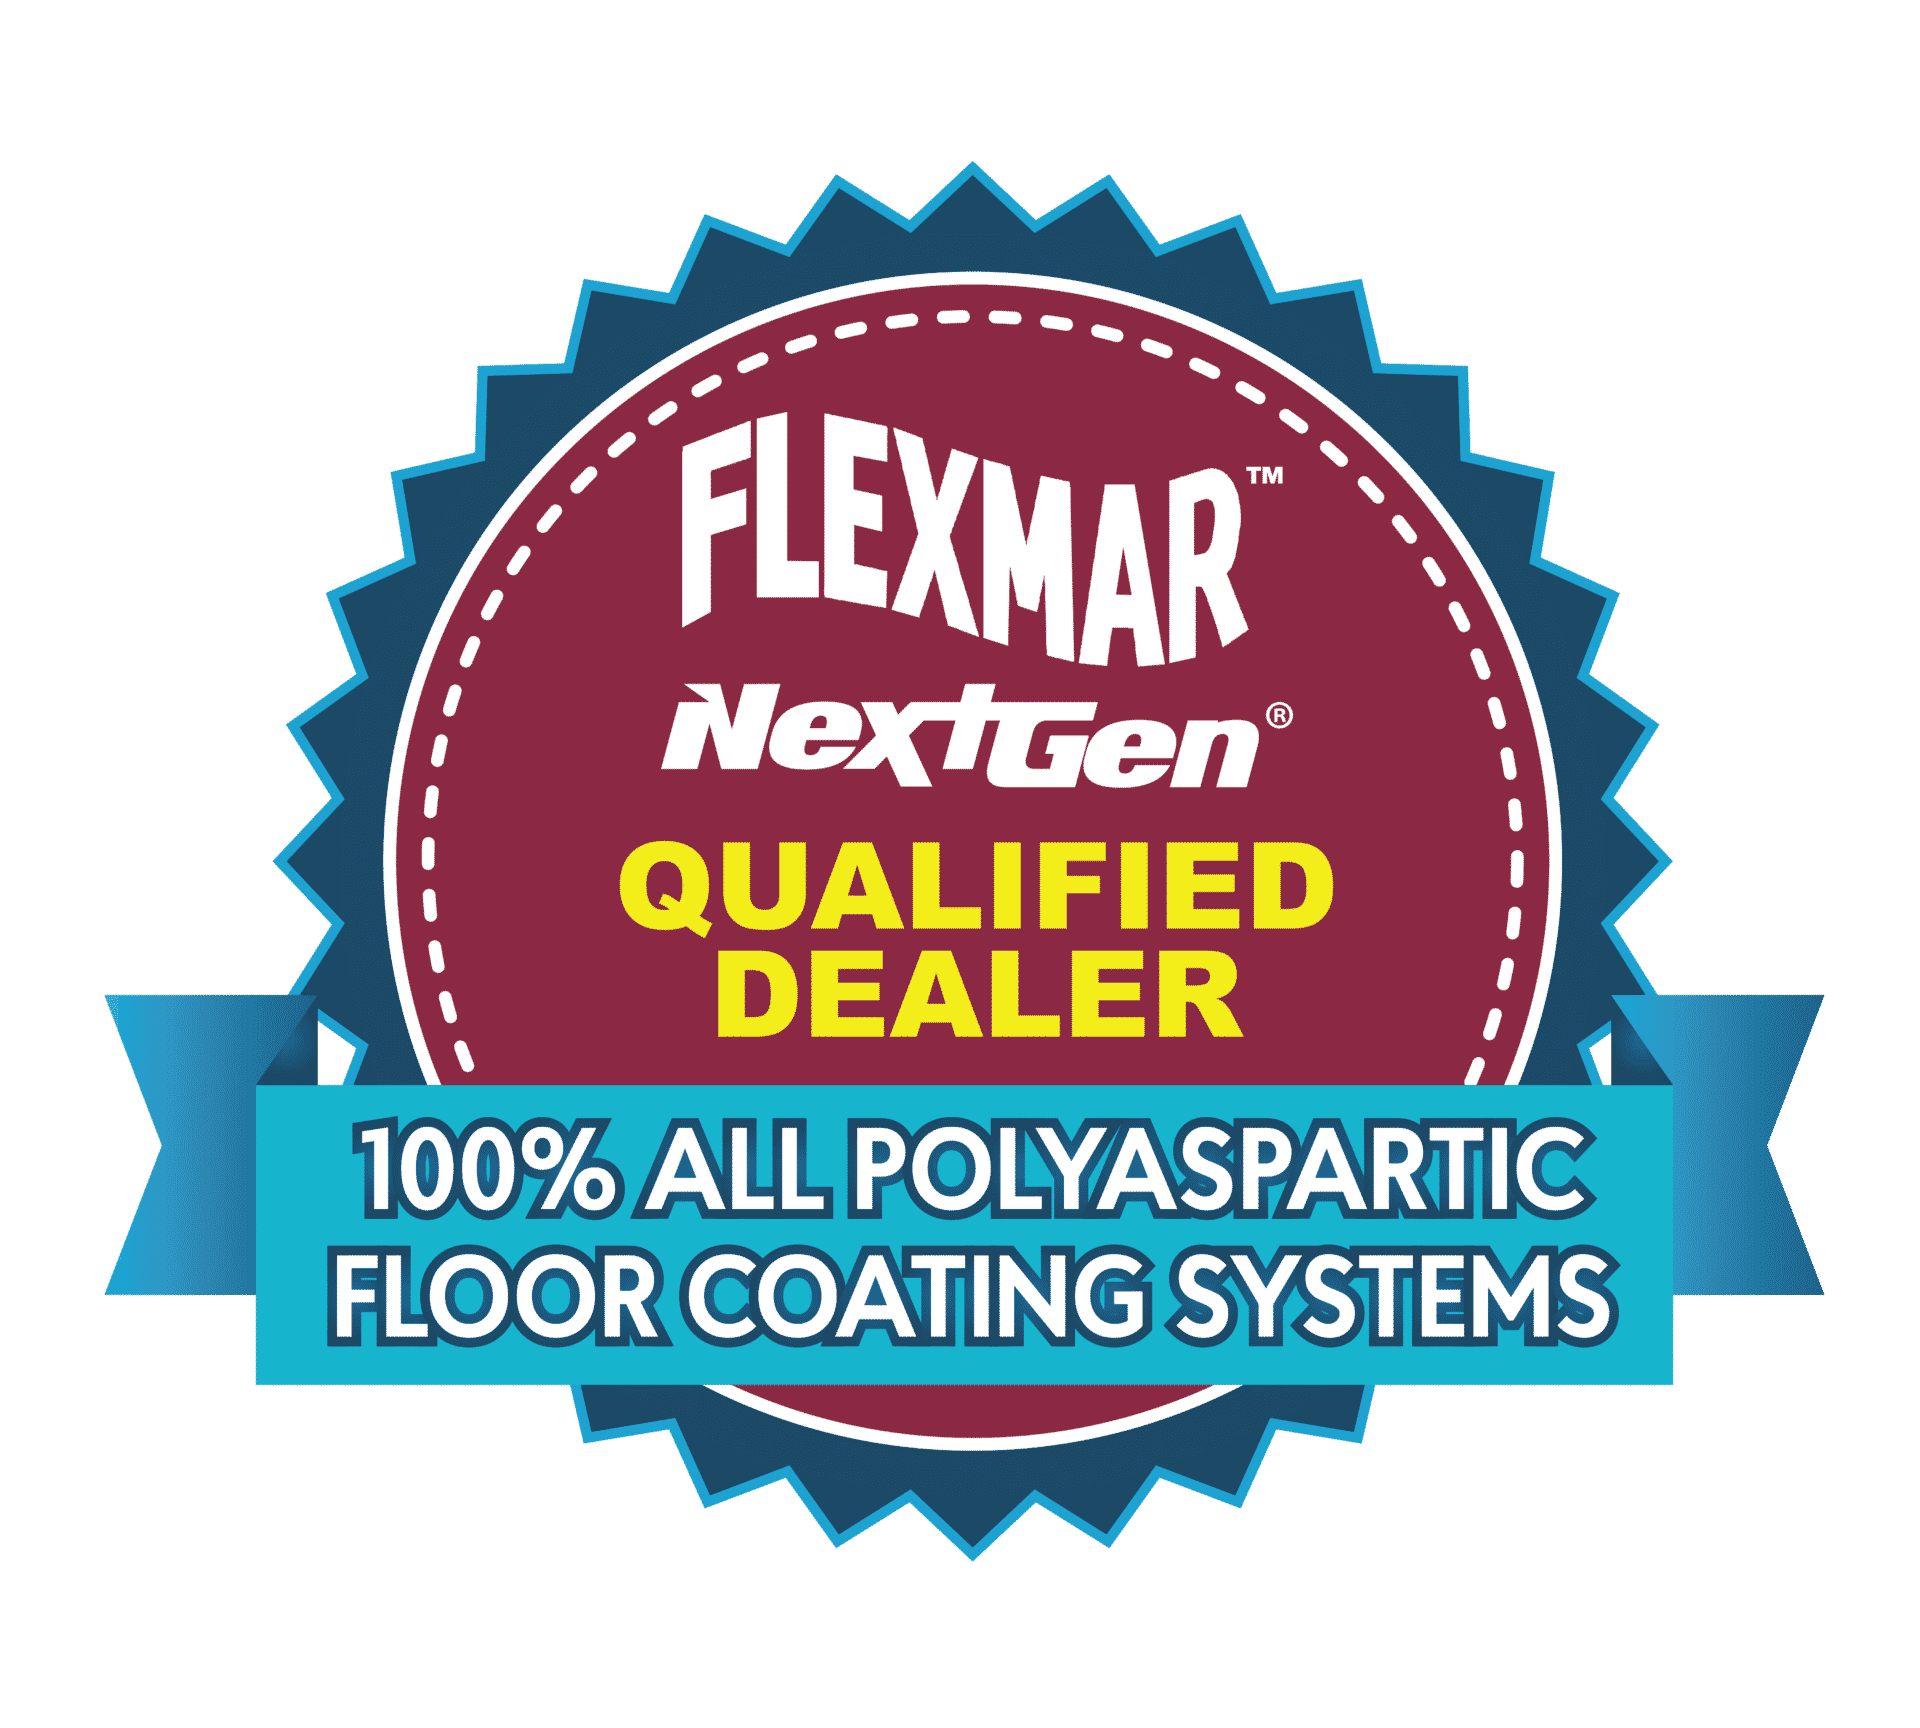 flexmar qualified dealer badge